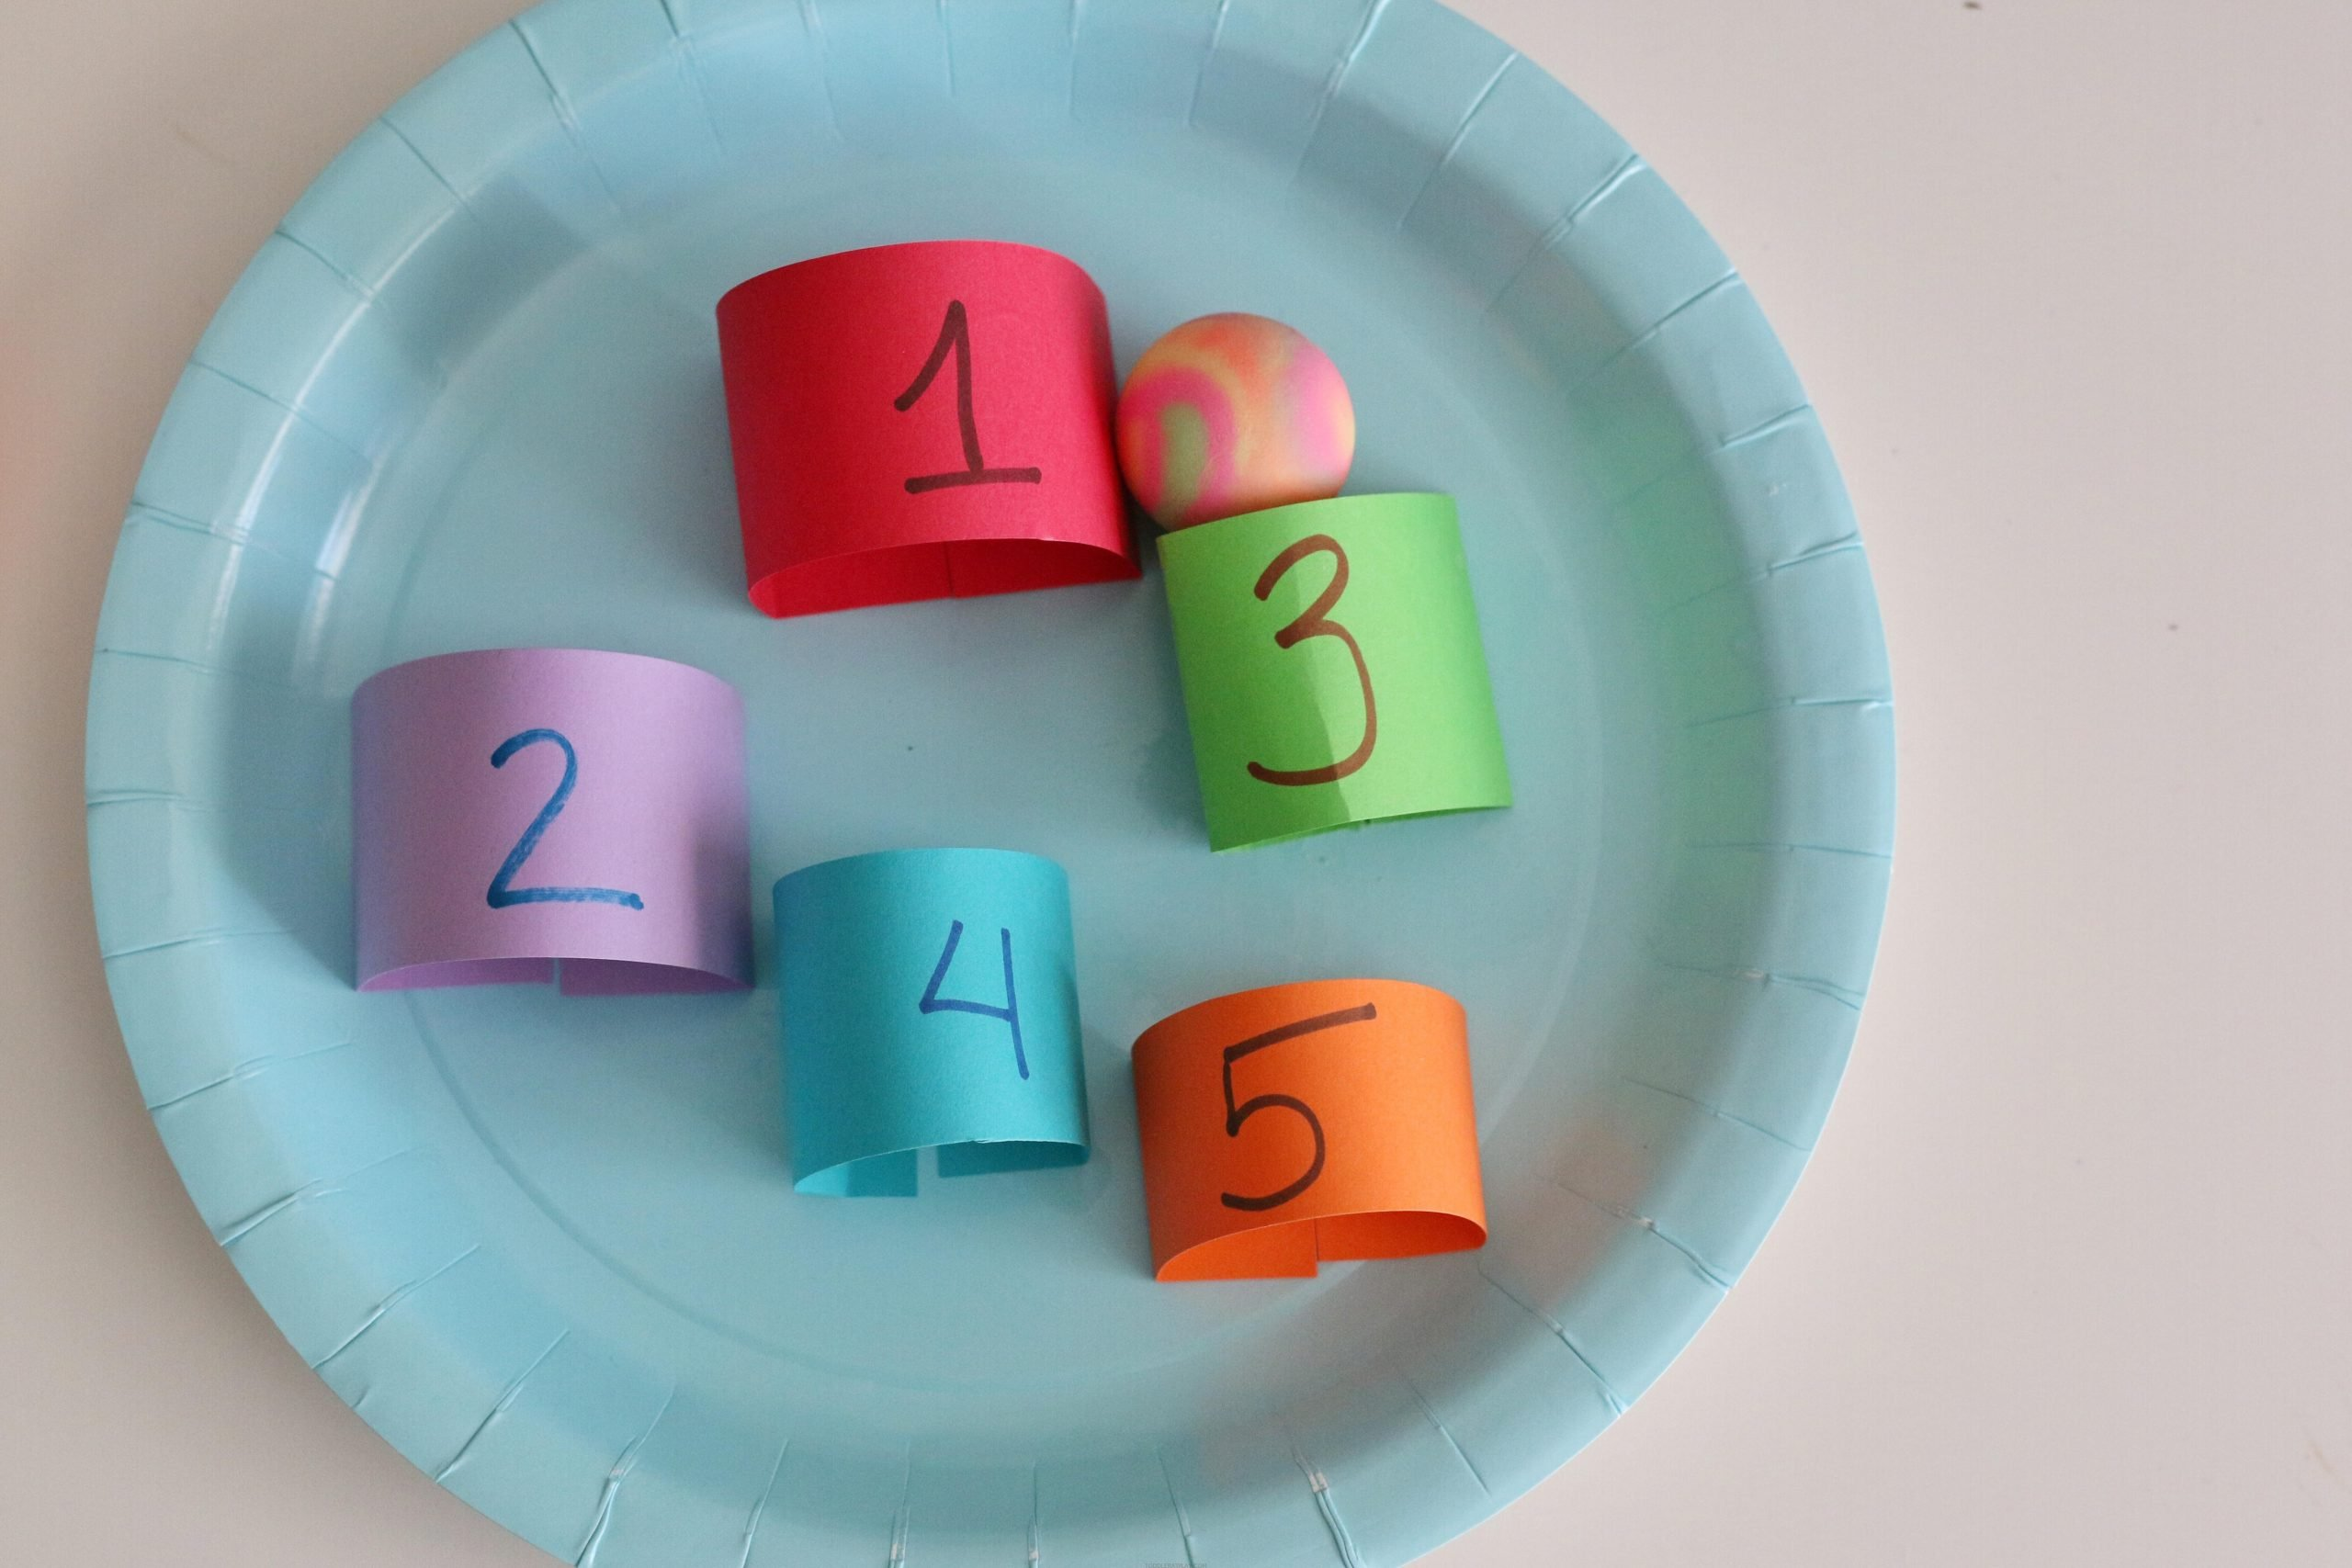 Paper Plate Marble Counting Maze (Quick Tutorial)